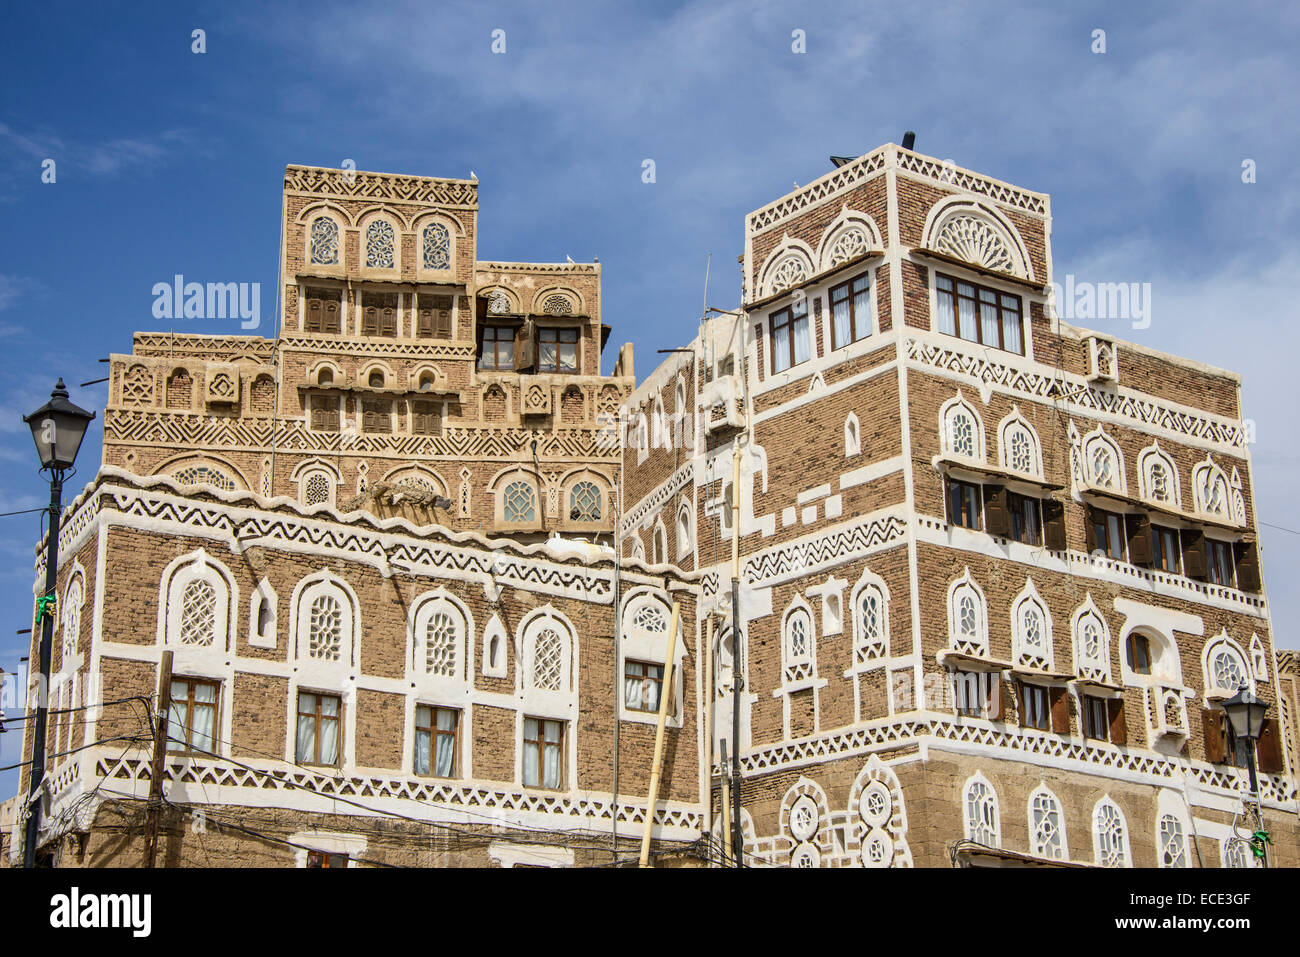 Traditional old houses in the old city of Sana'a, UNESCO World Heritage Site, Sana'a, Yemen Stock Photo